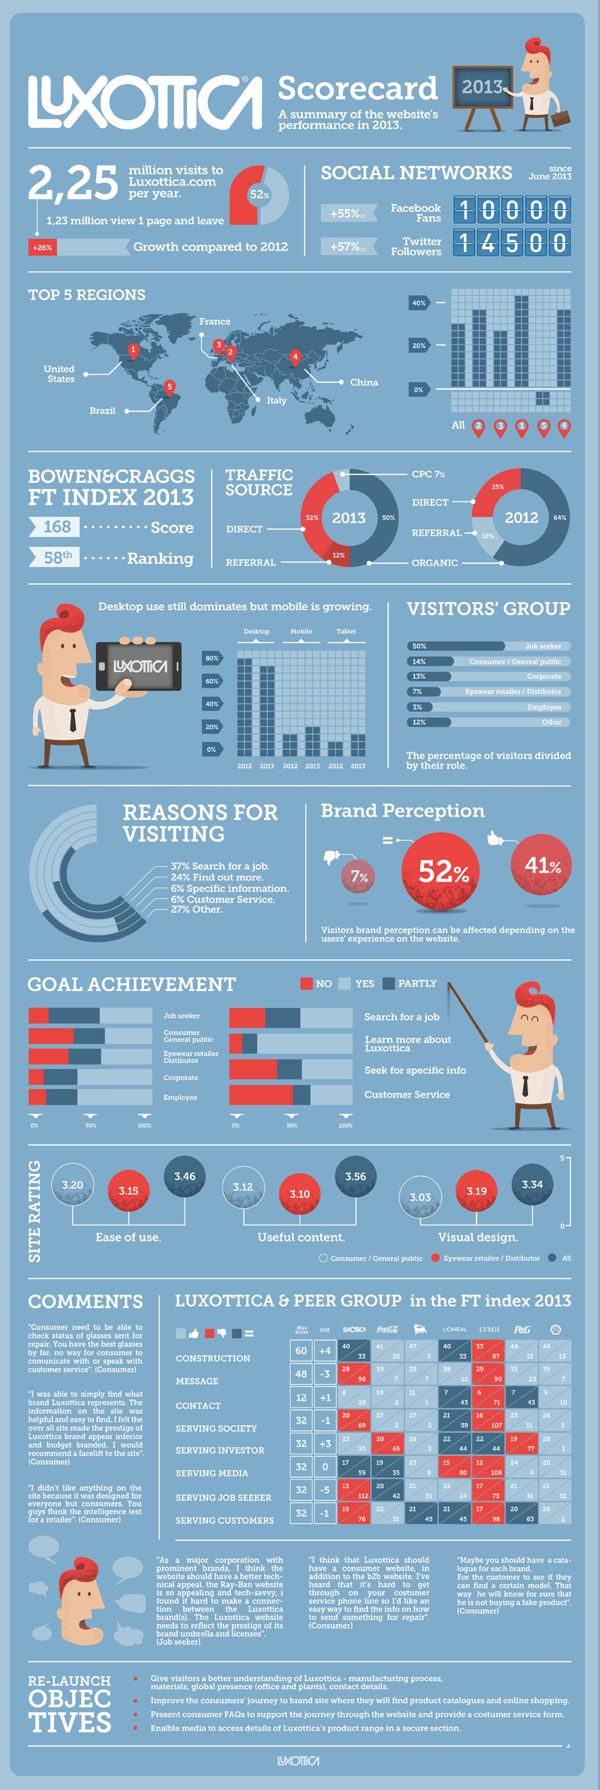 LUXOTTICA 2013 Scorecard - INFOGRAPHIC by Abel Costantino, via Behance